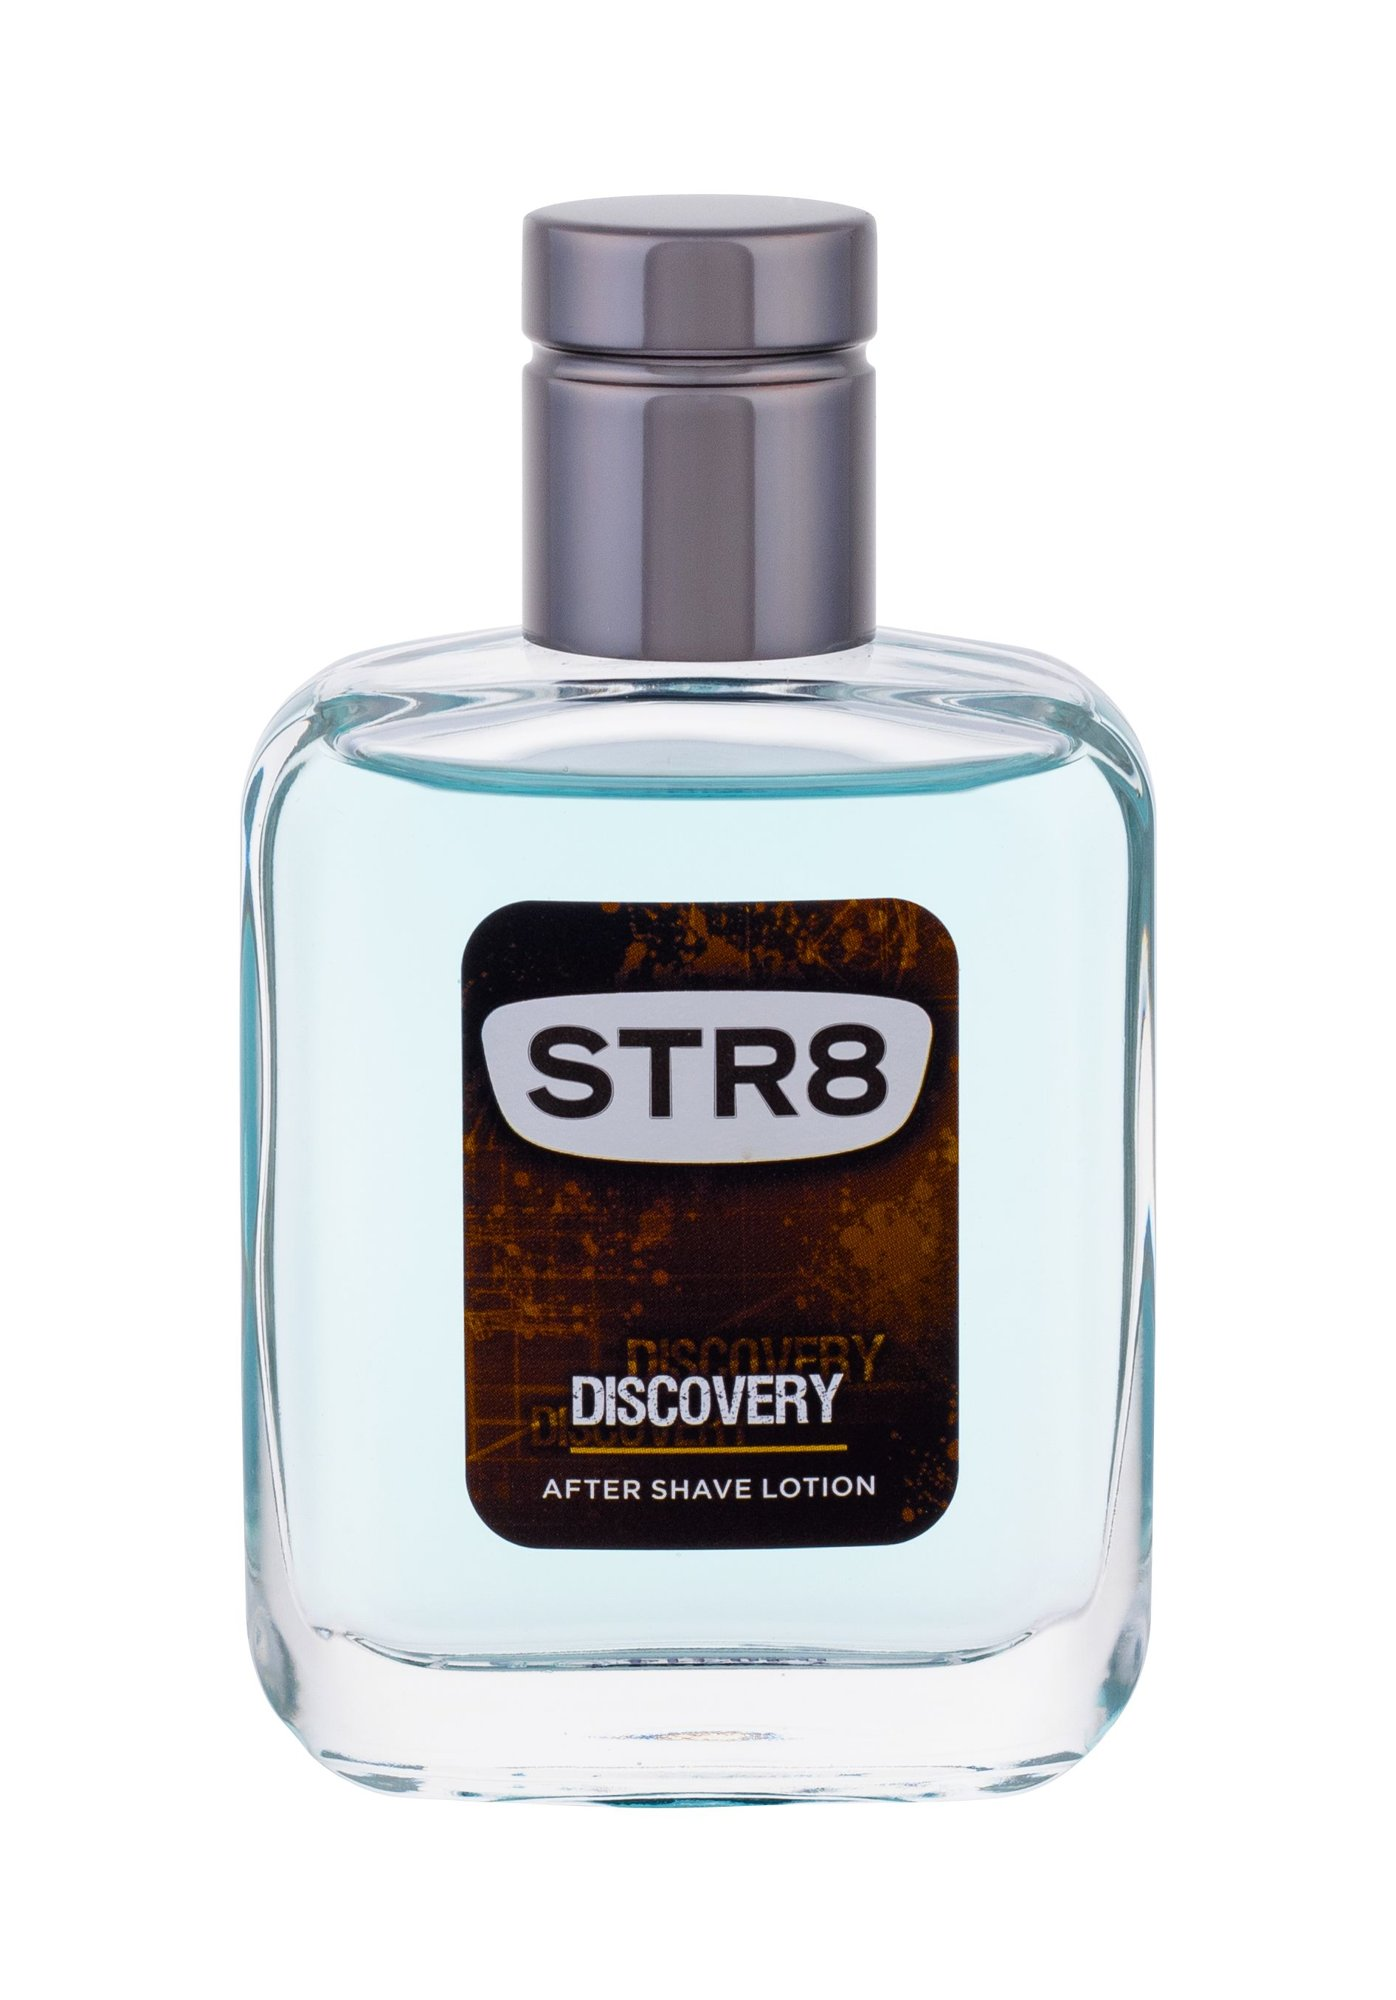 STR8 Discovery Aftershave 50ml